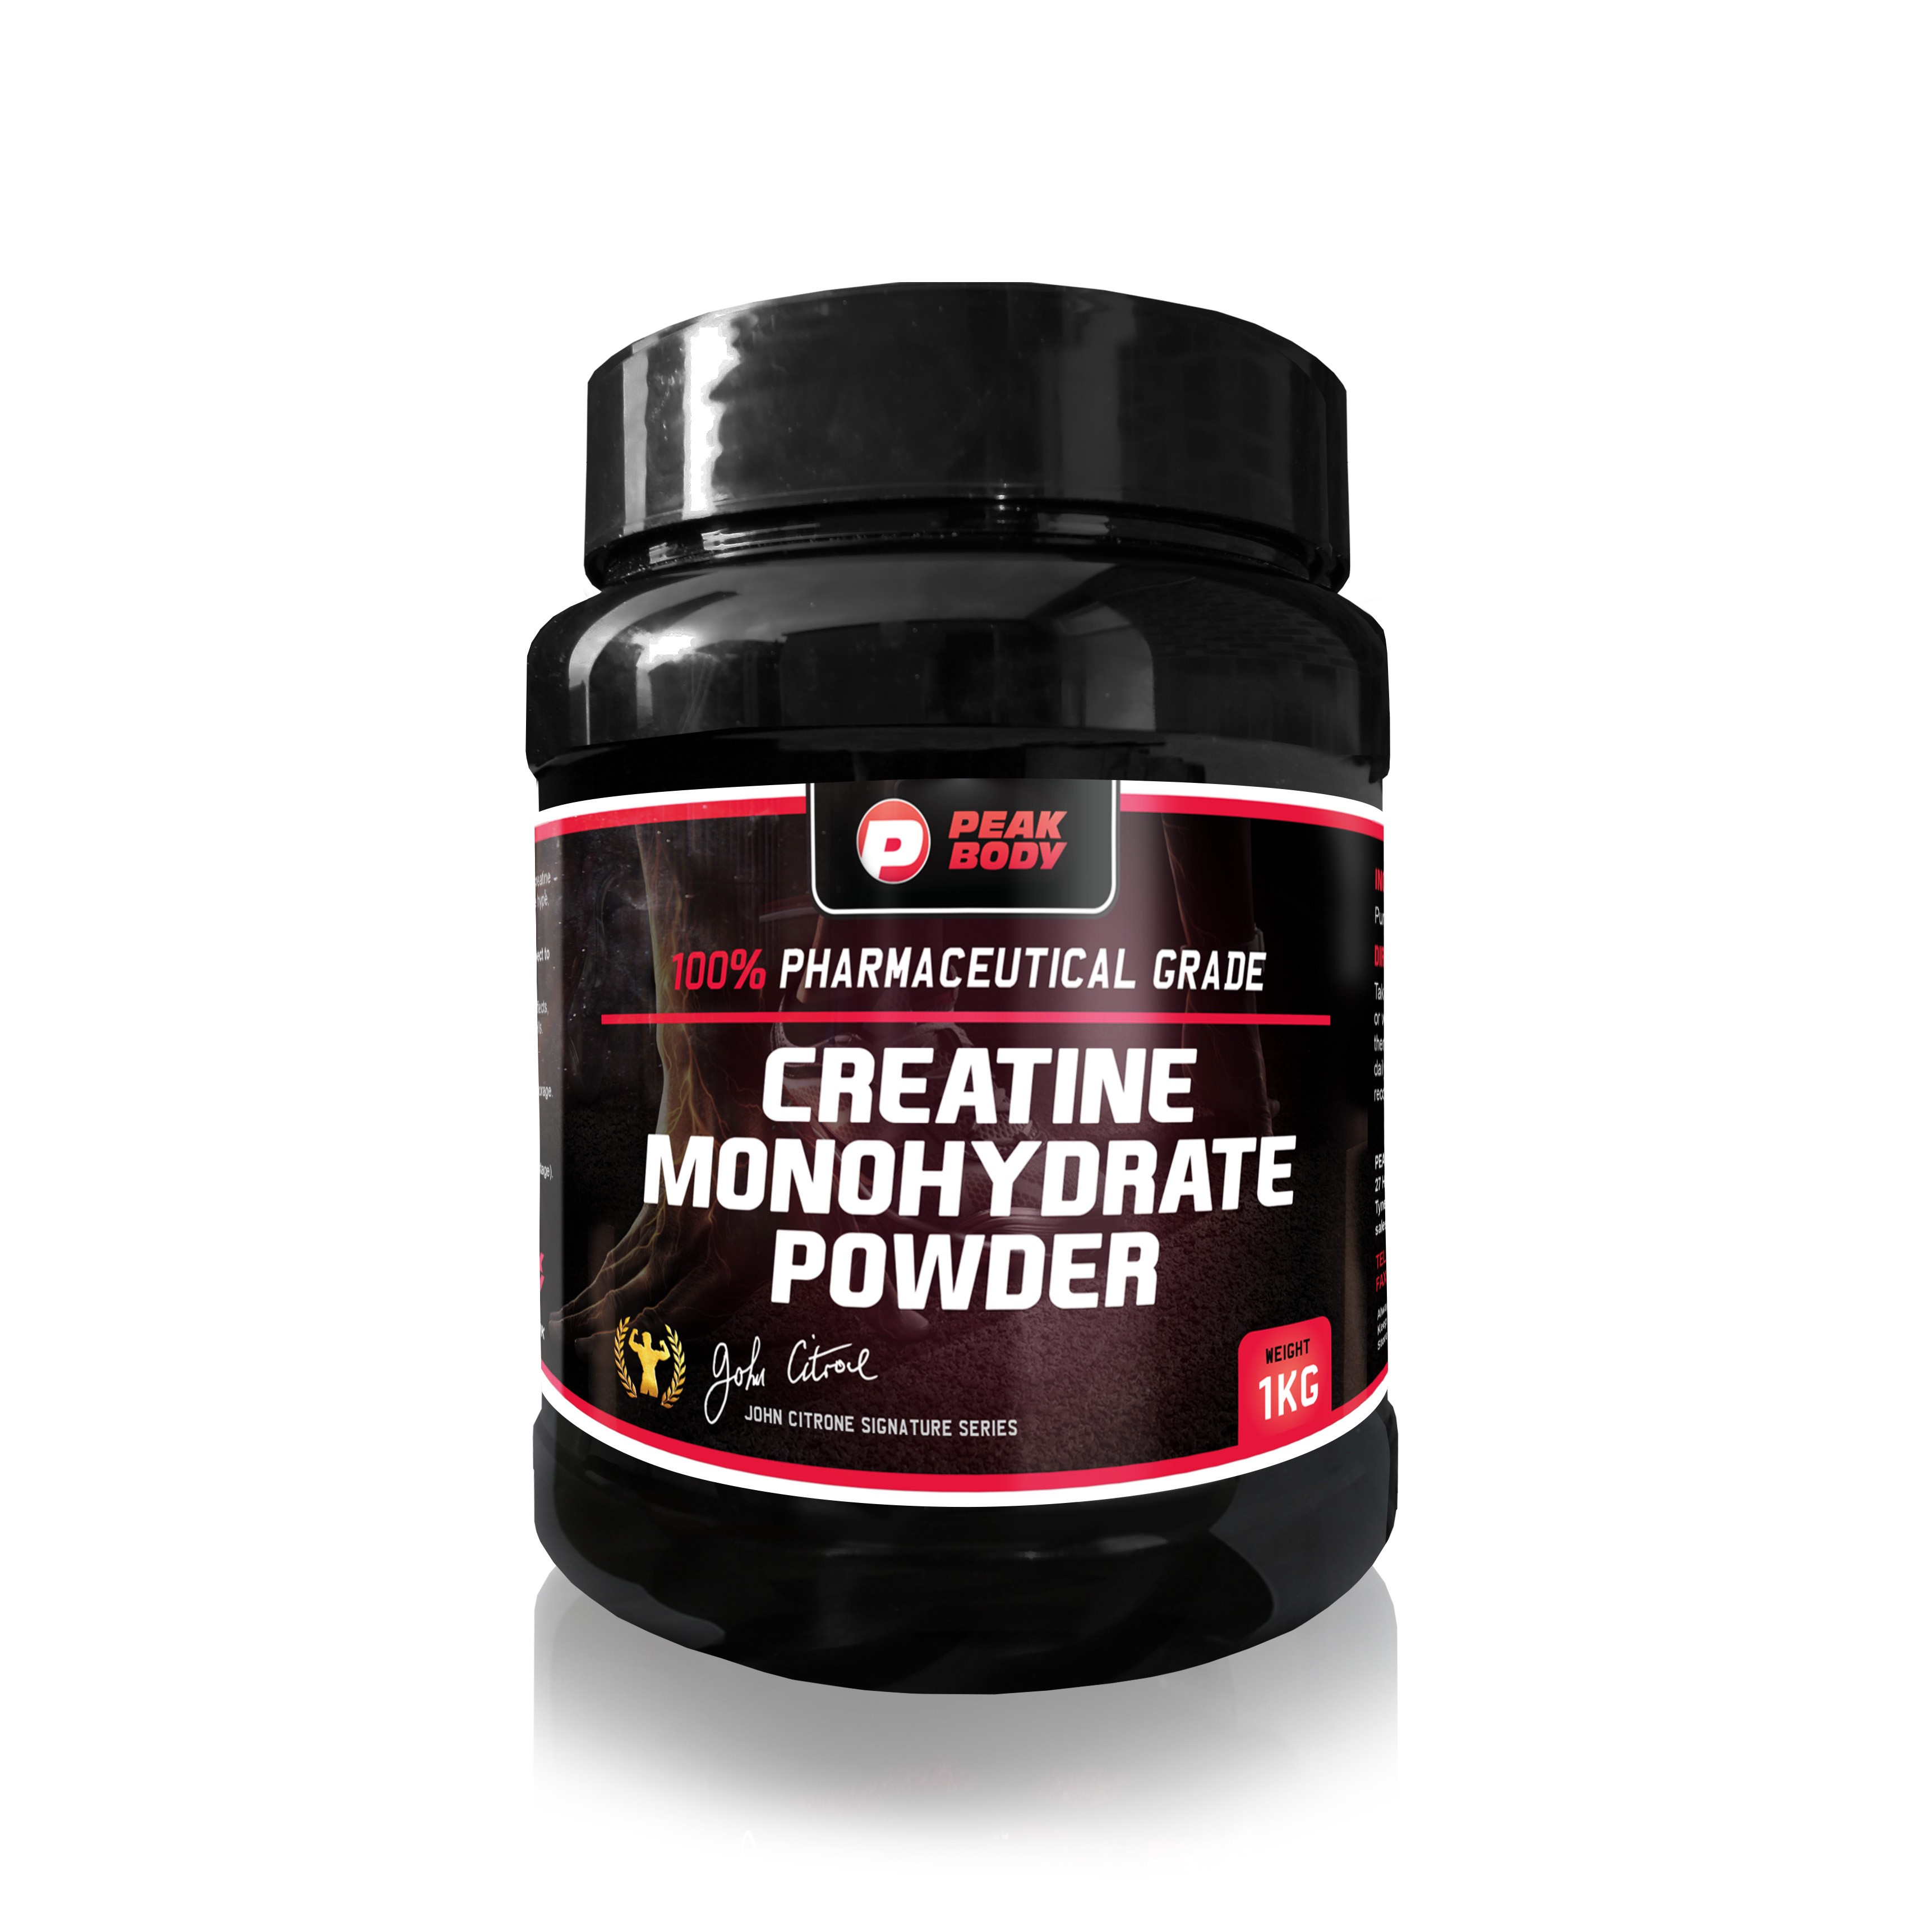 Peak Body Creatine Monohydrate